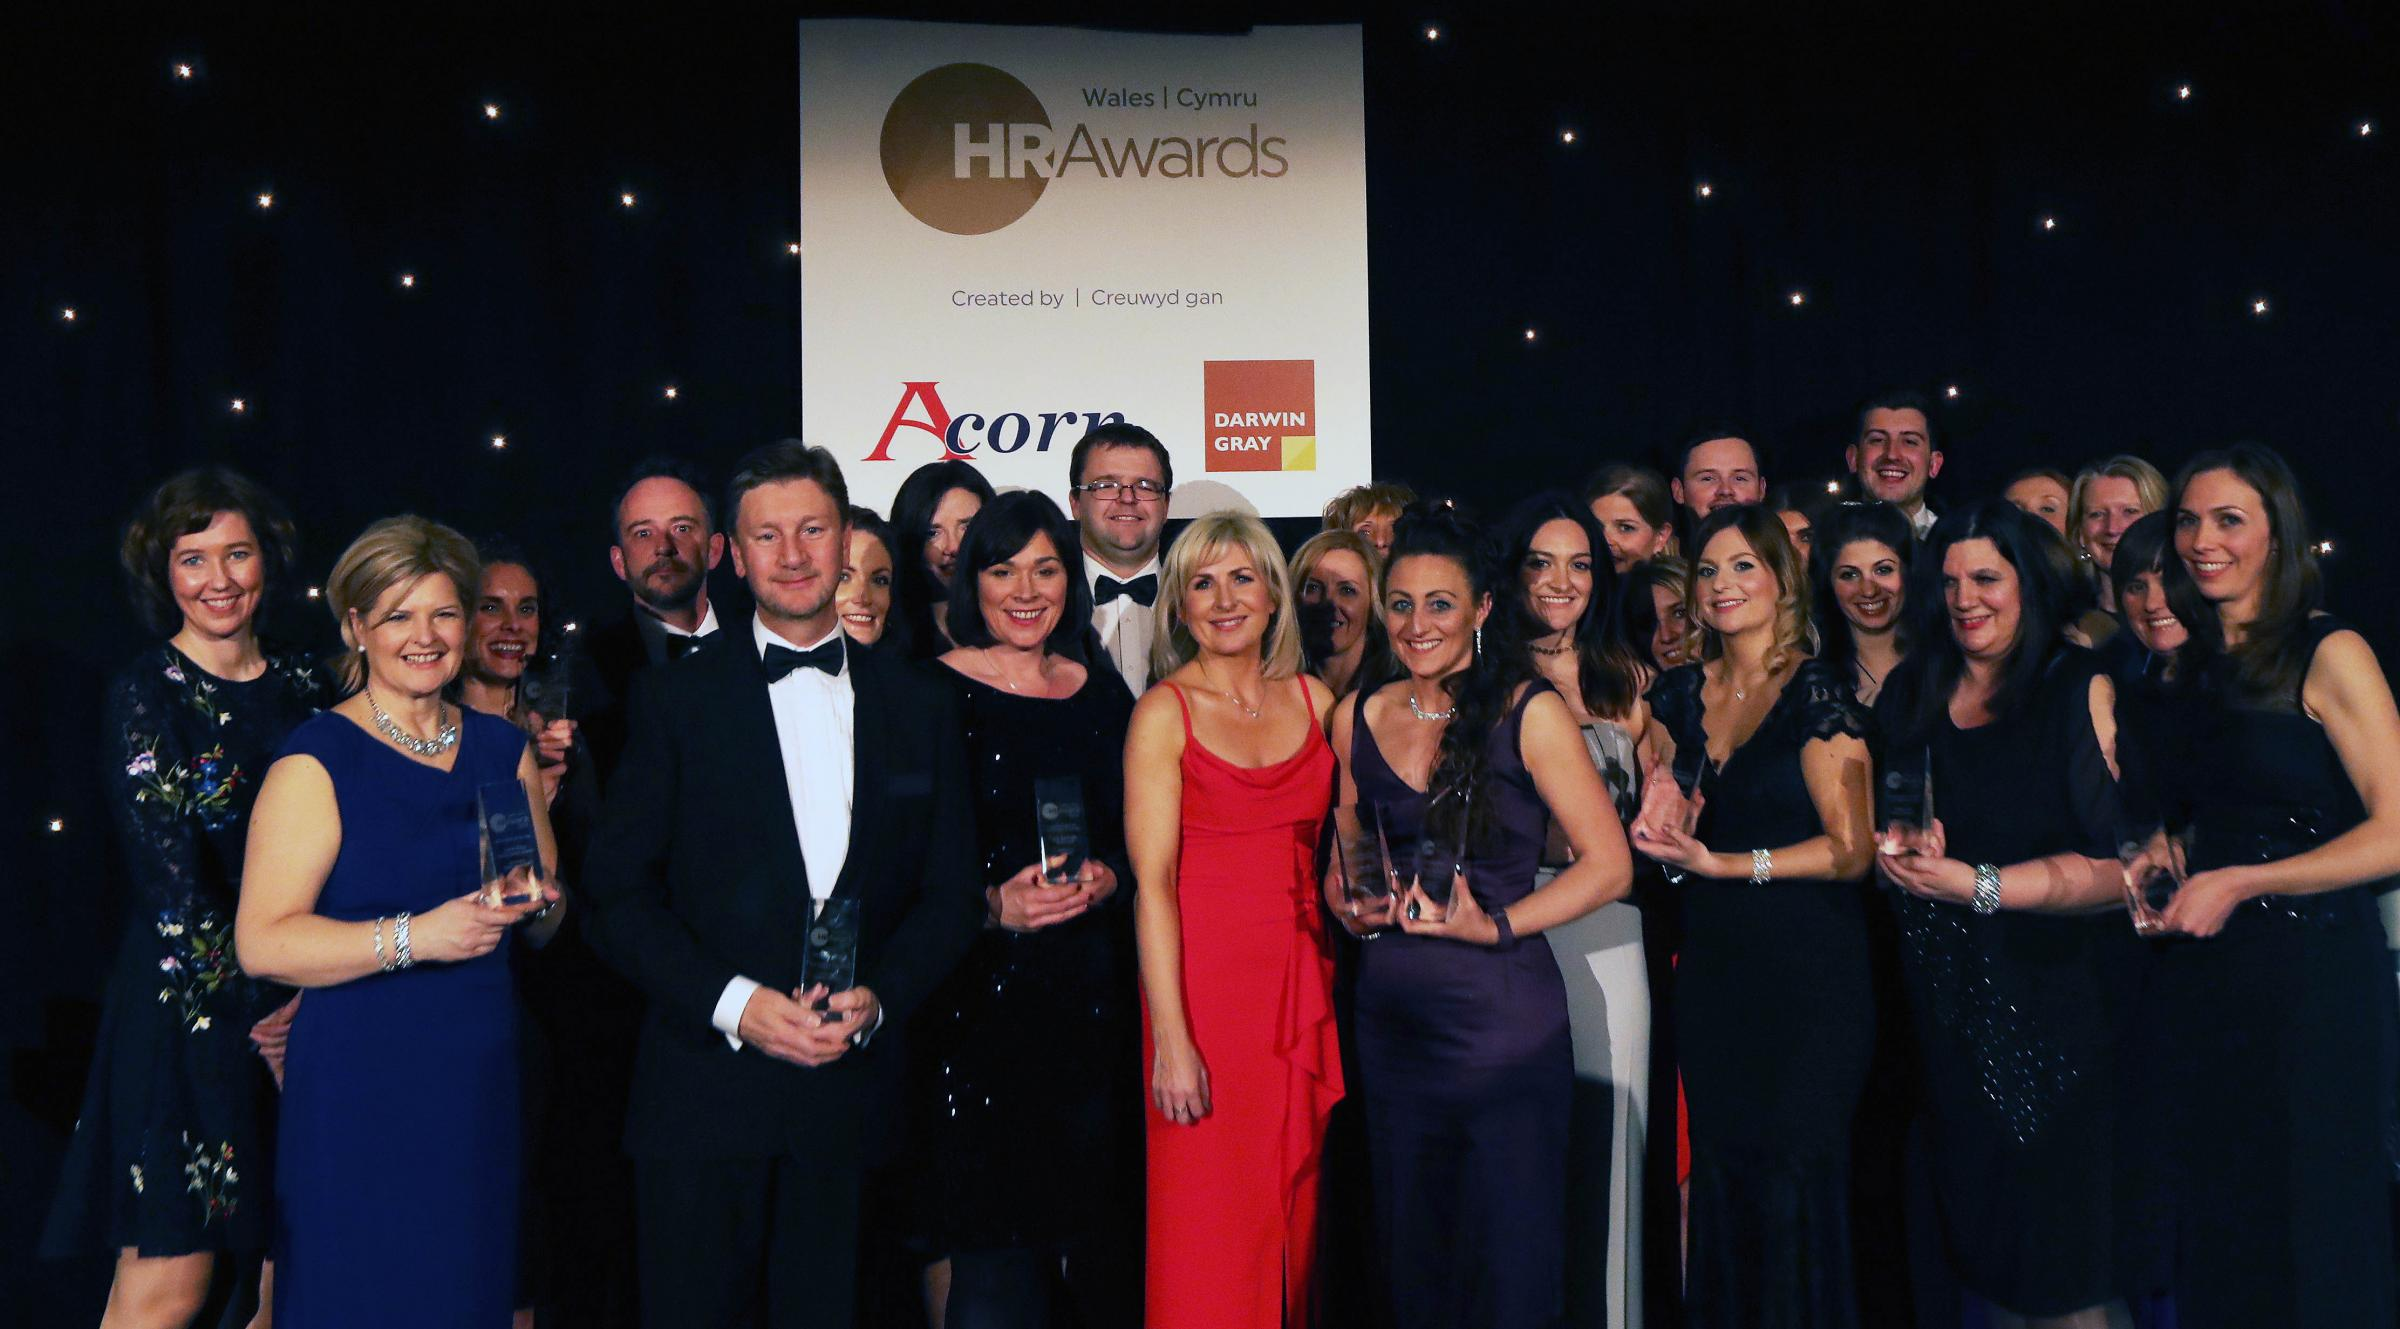 Wales HR Awards 2018 winners with host Sian Lloyd